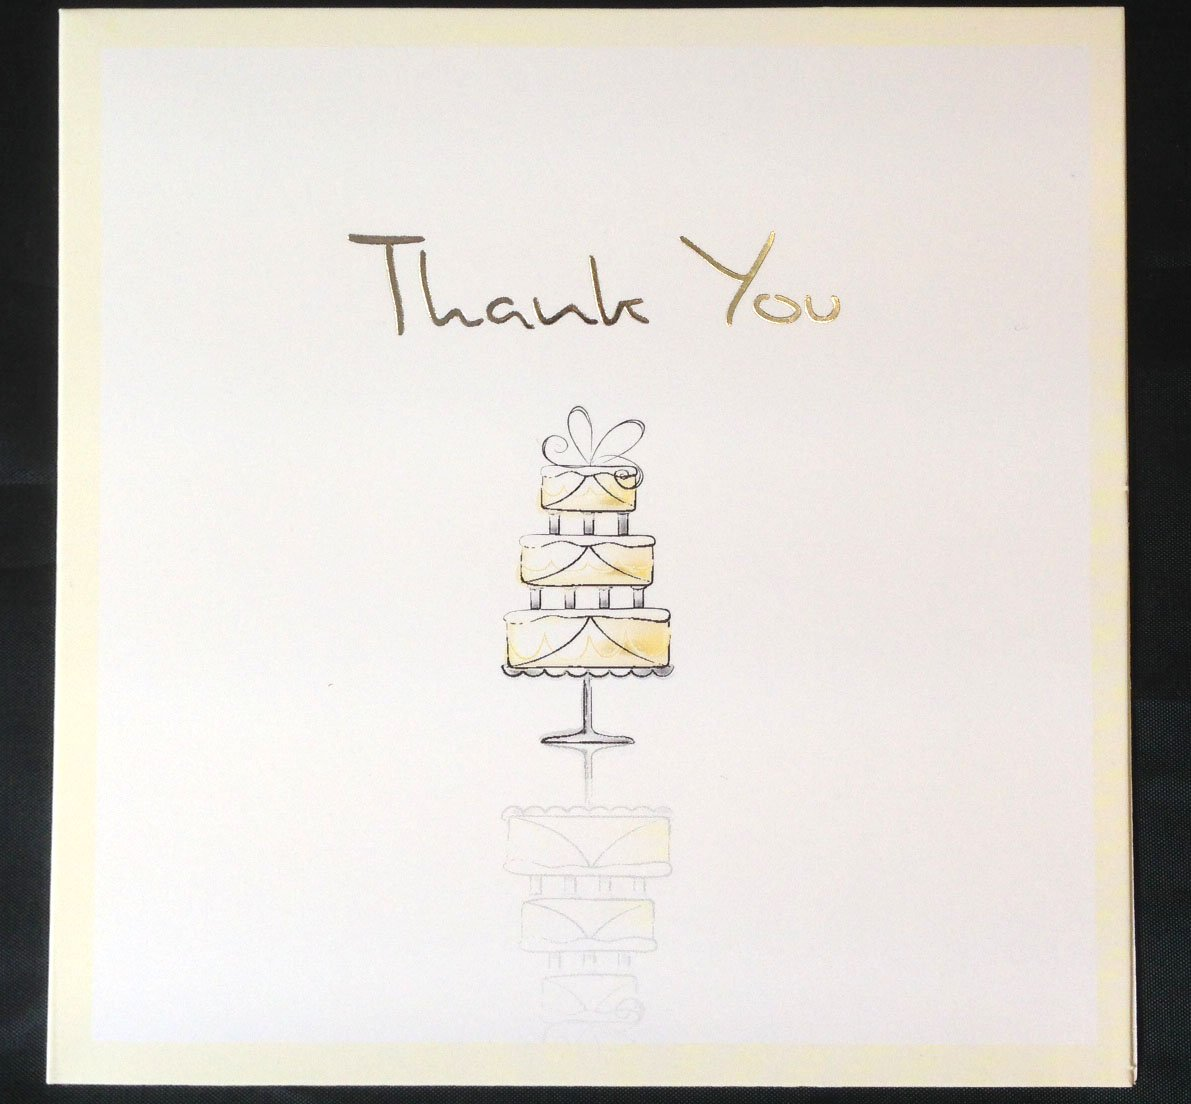 10 x Luxury Wedding Thank You Cards Champagne Flute Glasses or Wedding Cake Design Tallon